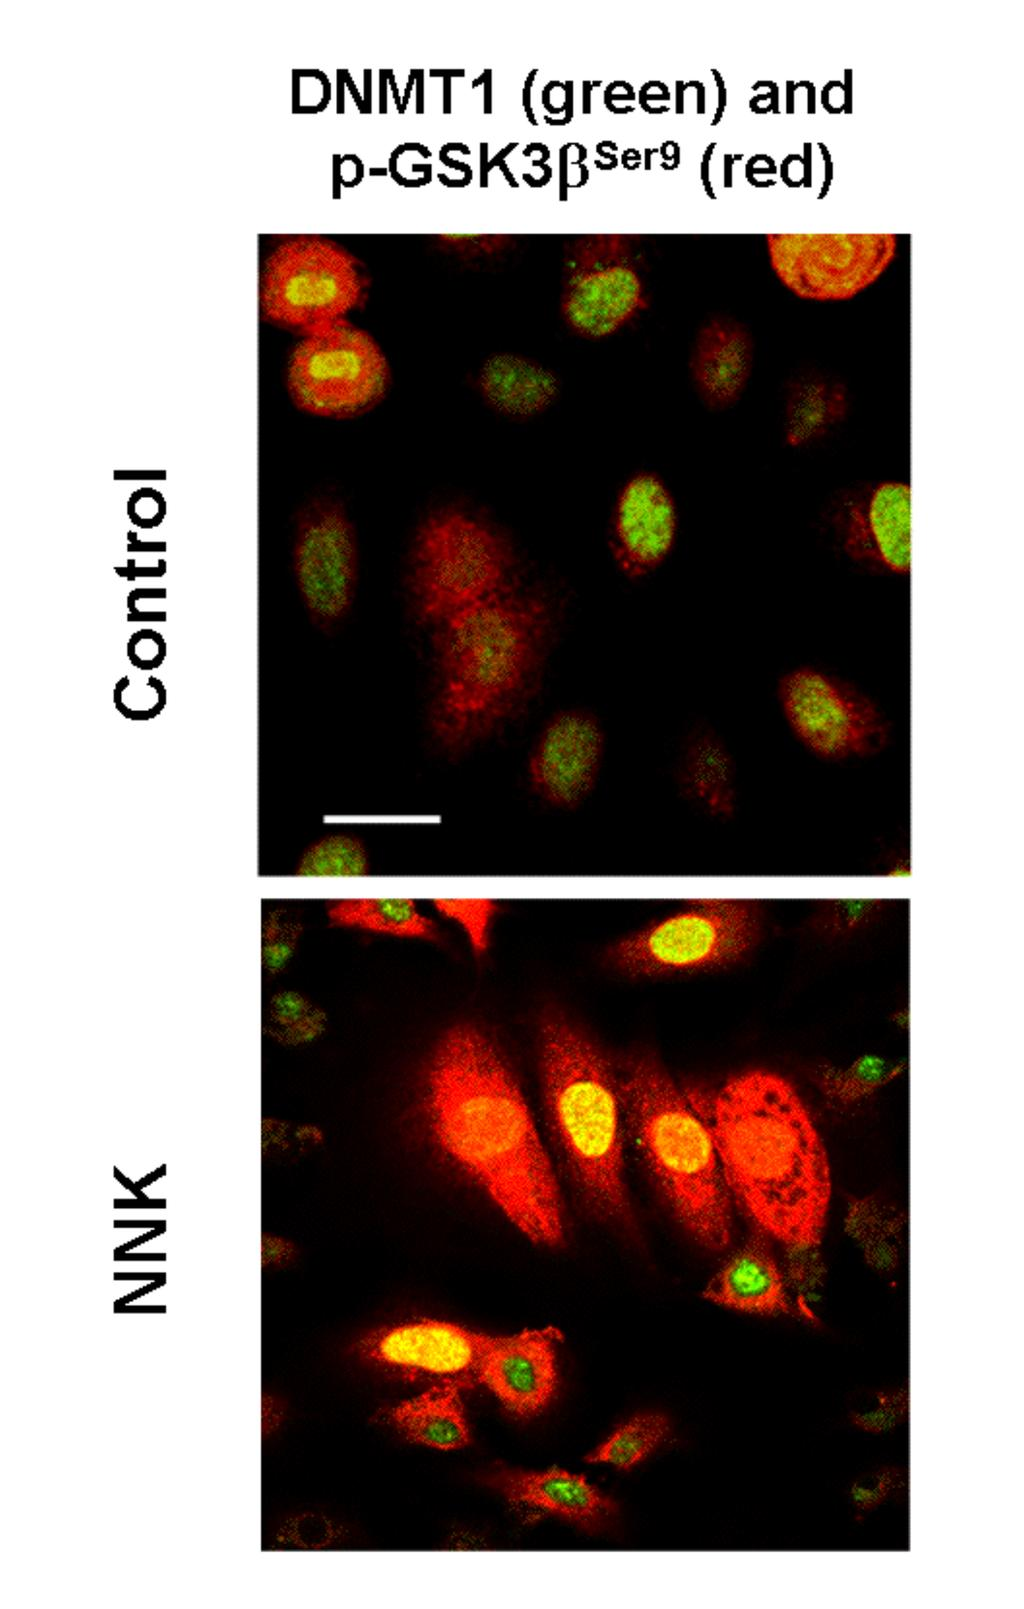 Supplemental Figure 5 An increase of DNMT1 and p-gsk3β Ser9 expression and their co-localization (yellow color) were observed in cells treated with NNK.